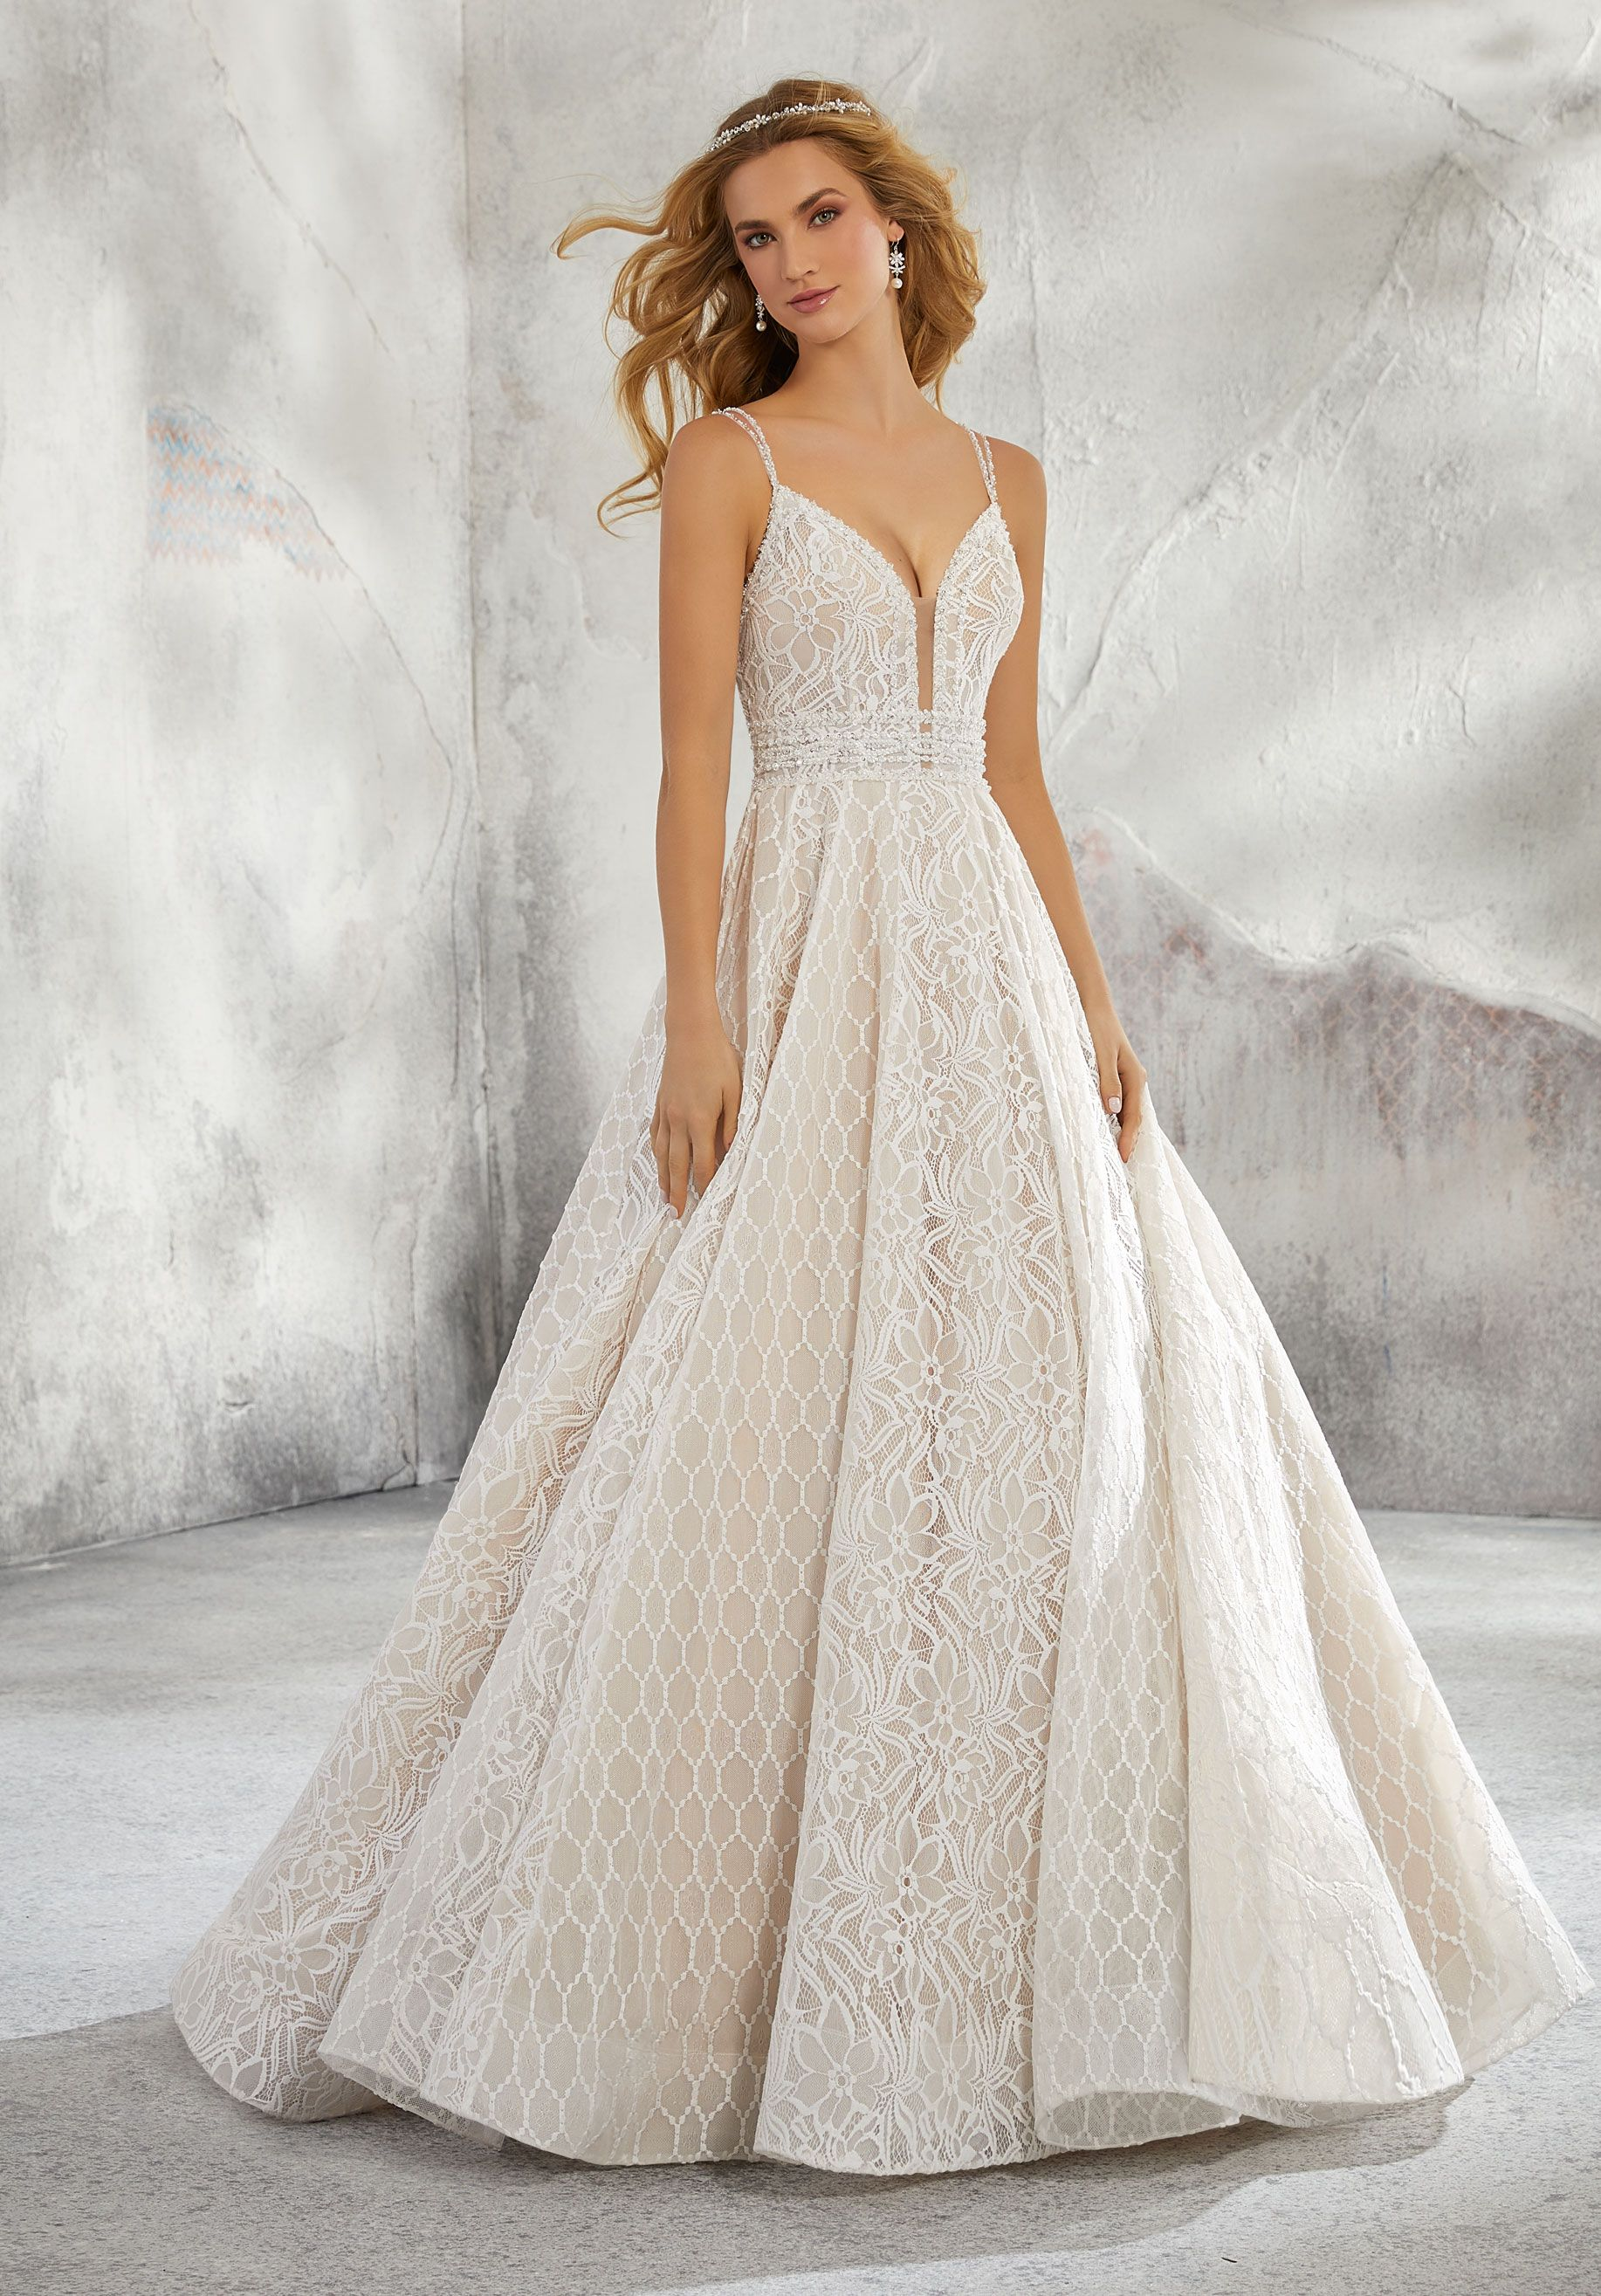 Fantasy Bridal Contemporary And Modest Gowns For Utah Brides Salt Lake City County 131089